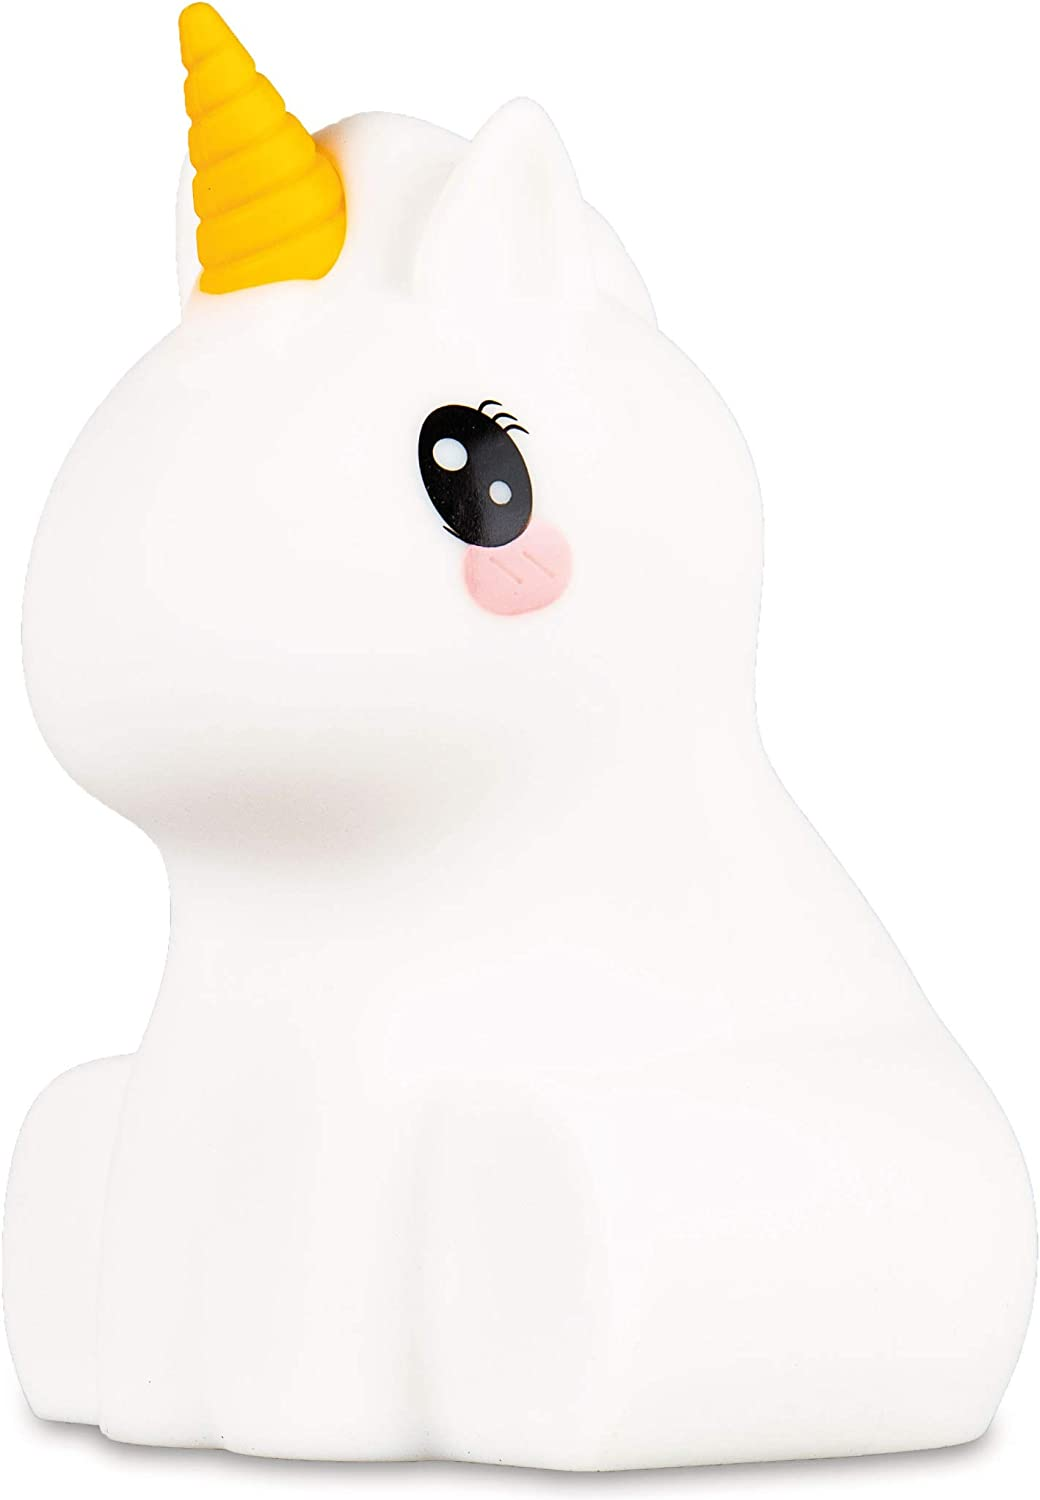 Lumipets Unicorn Night Light for Kids Cute Silicone LED Animal Baby Nursery Nightlight Which Changes Color by Tap - Portable and Rechargeable Gift Lamps for Toddler and Kids Bedroom